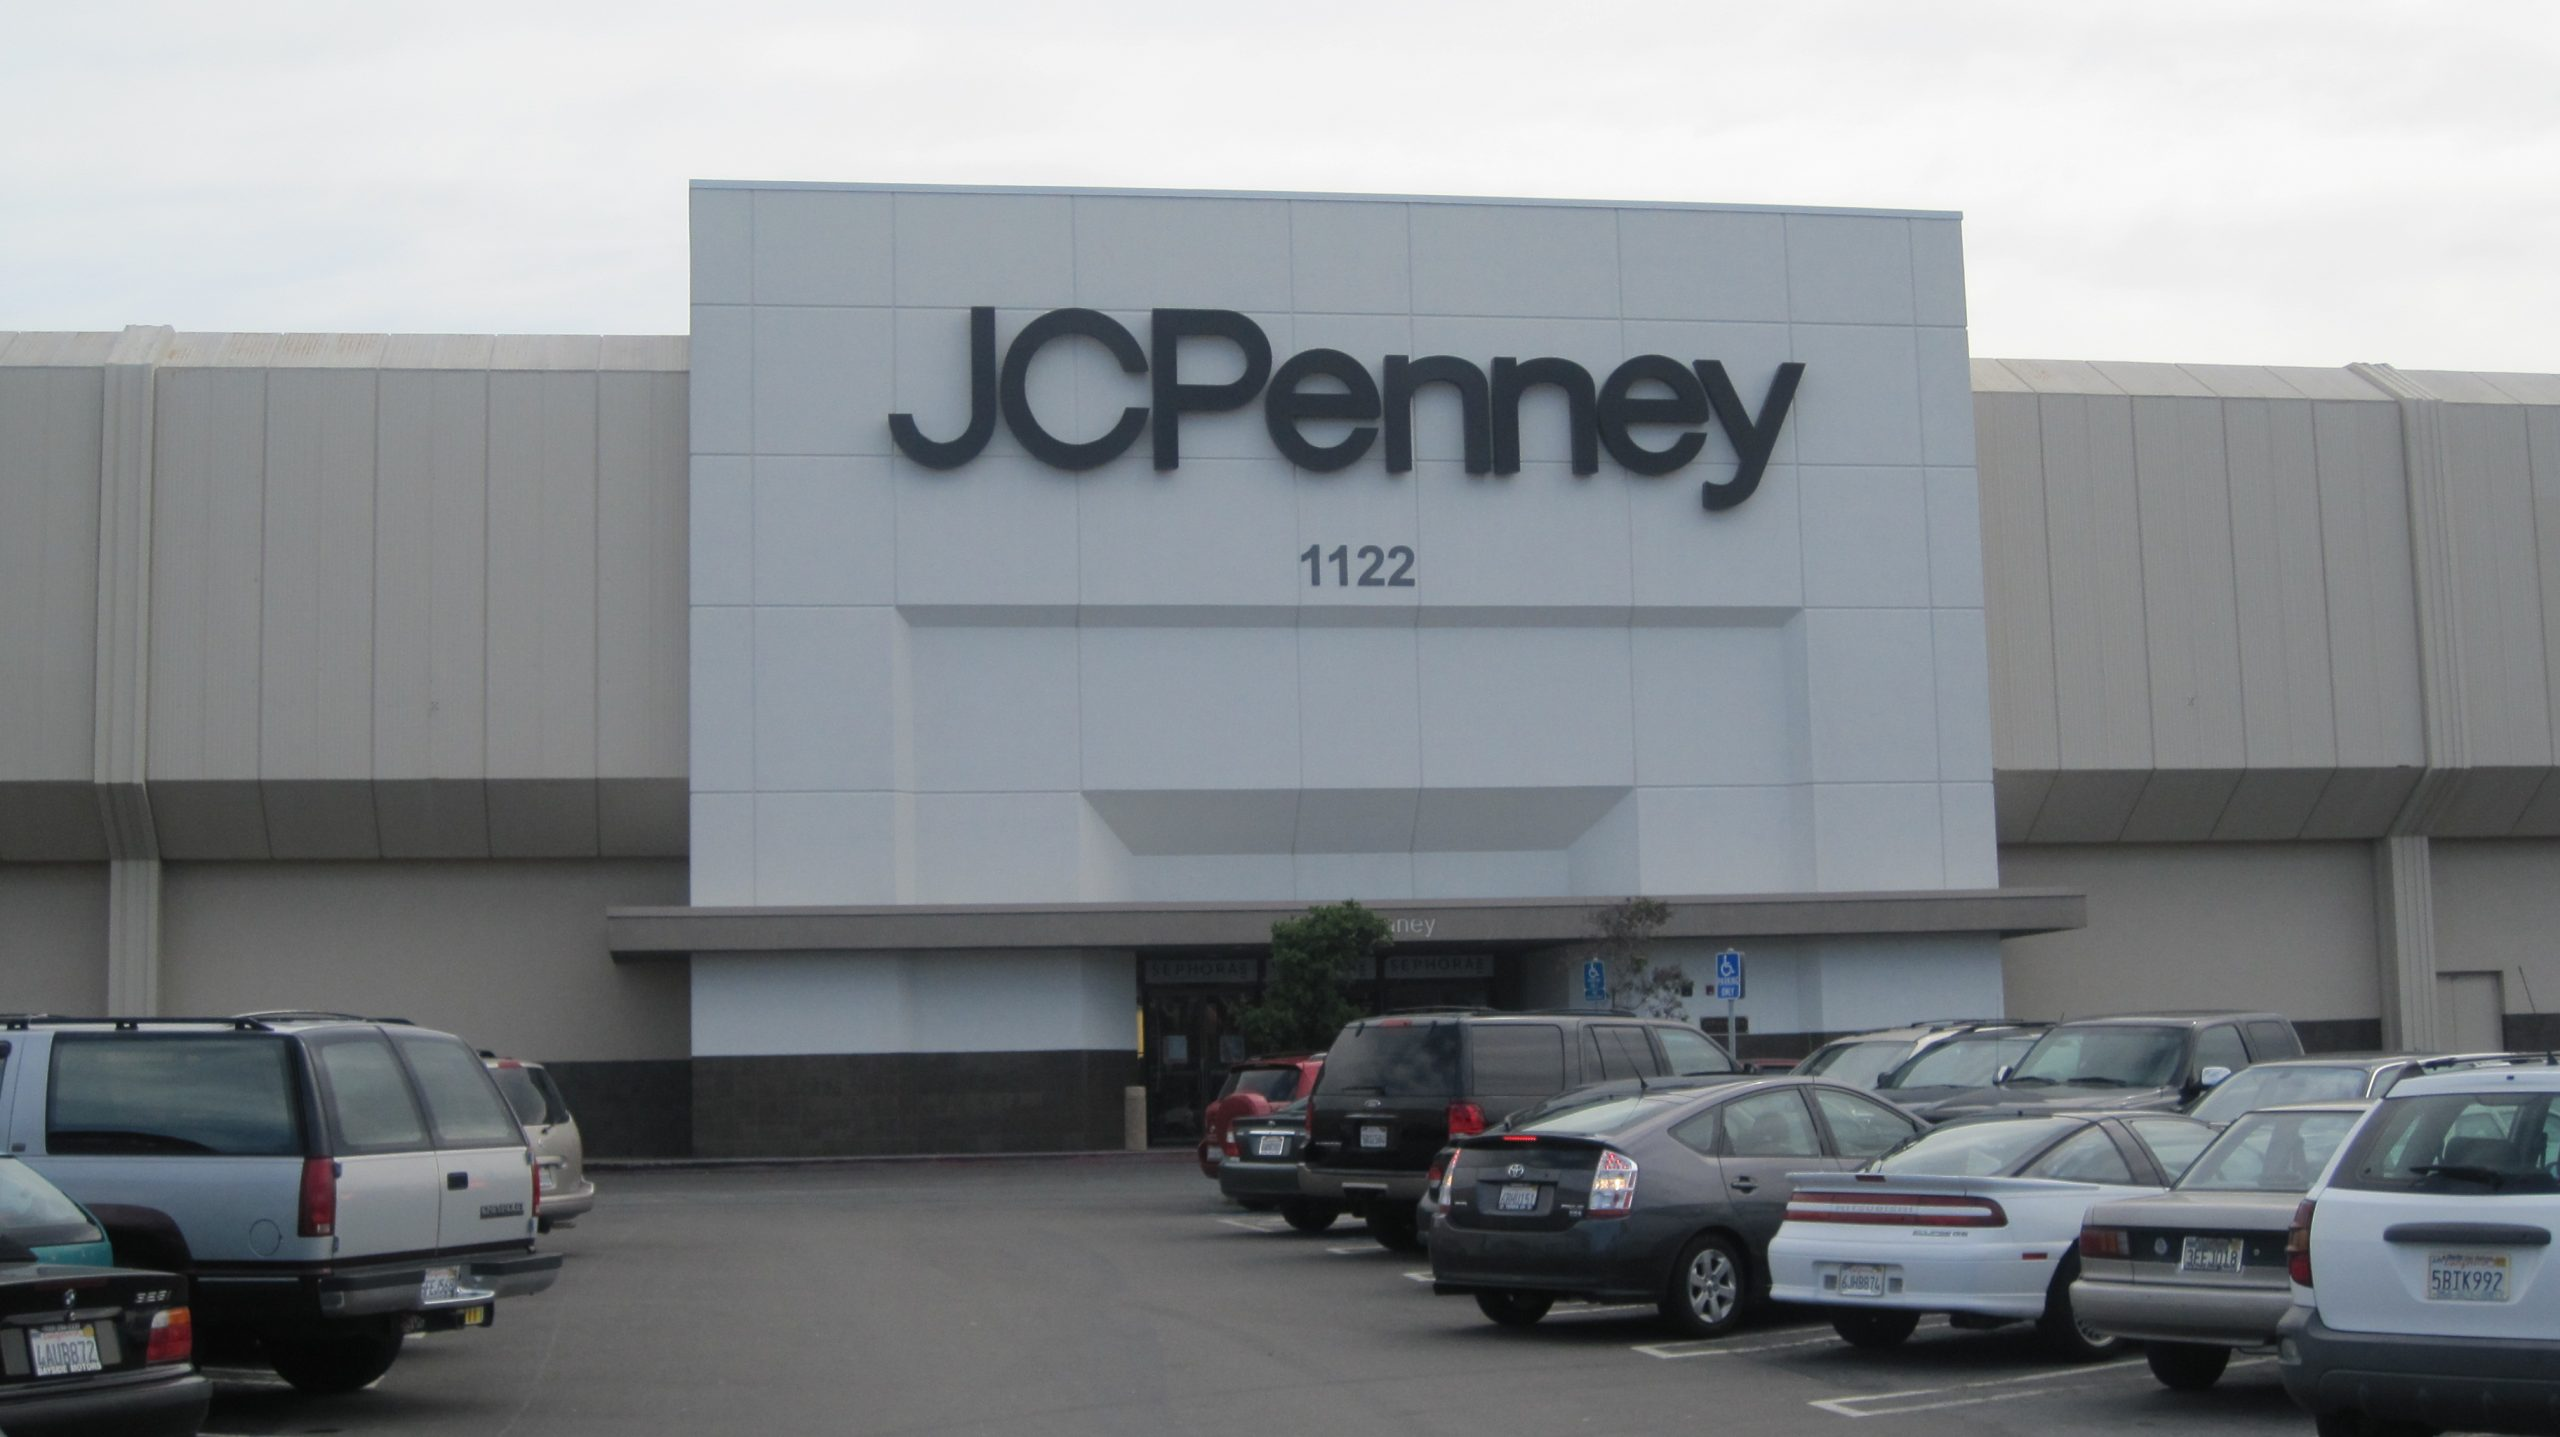 jcpenney location